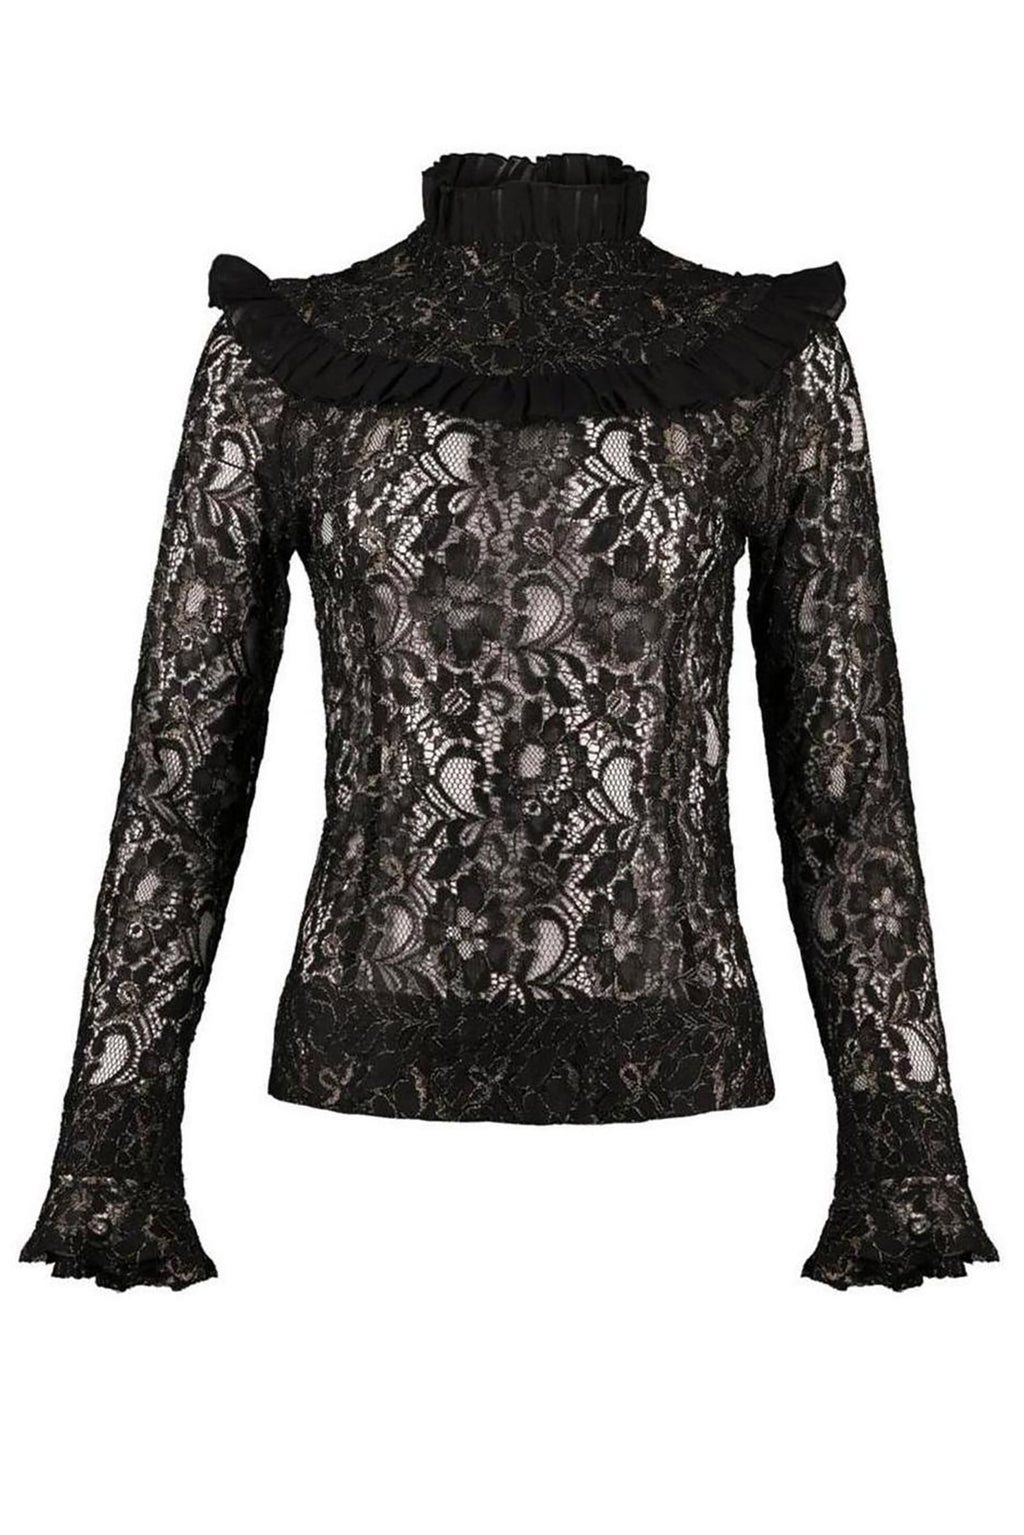 Black Victorian High Neck Blouse